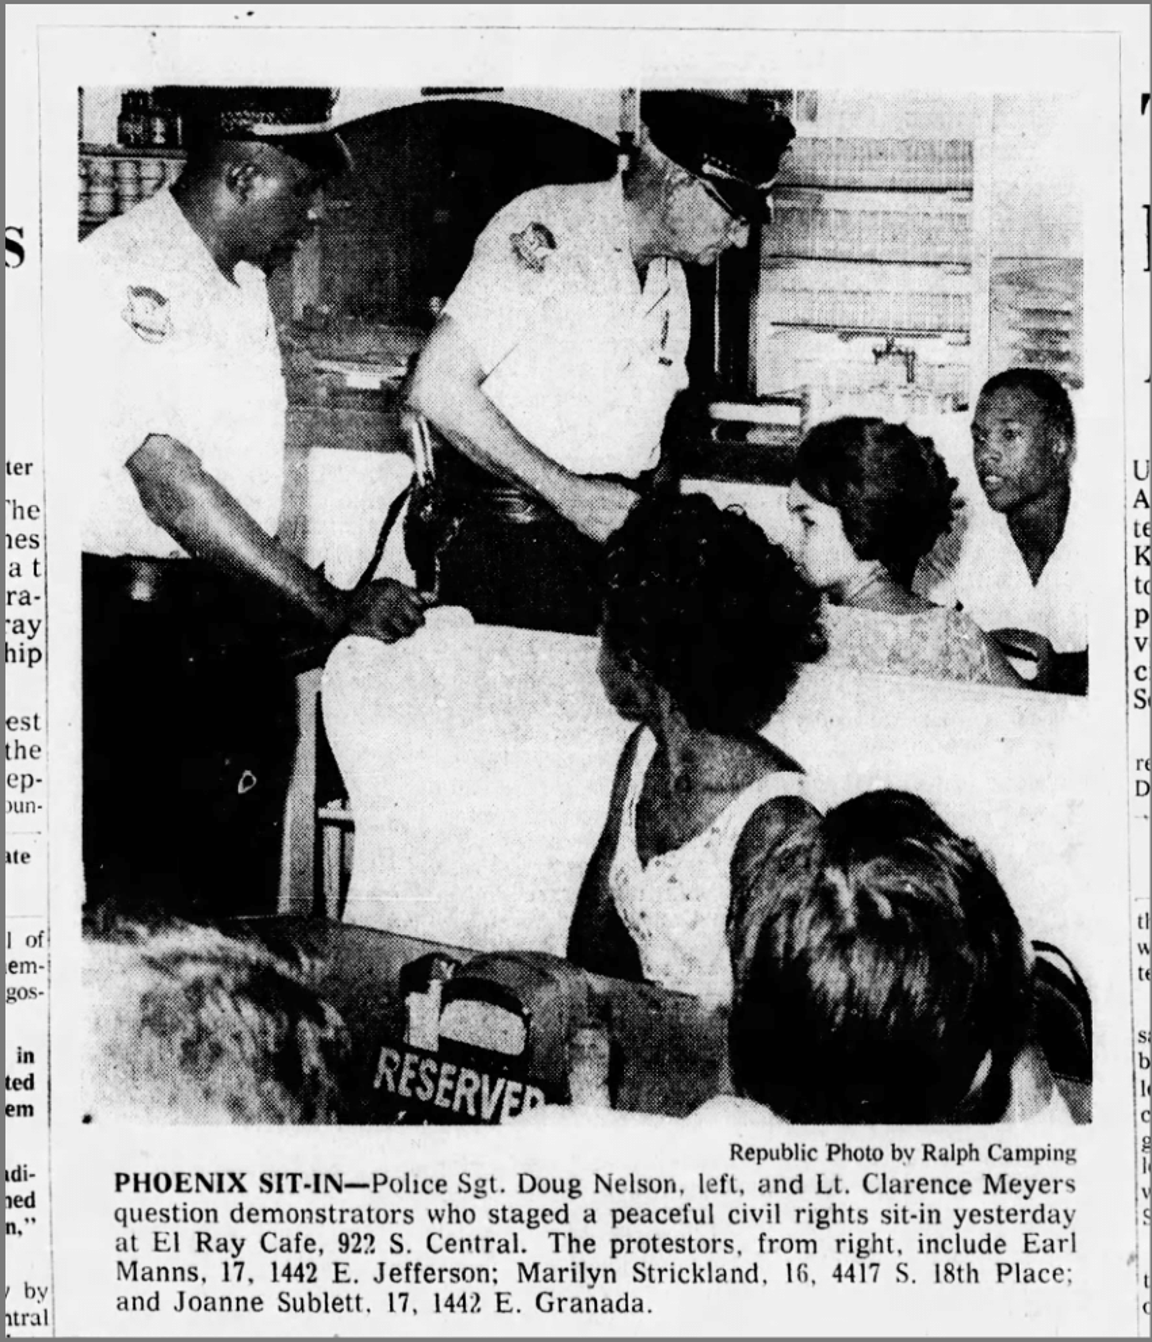 A clipping of The Arizona Republic on Sept. 1, 1963 of a sit in at El Rey Cafe.